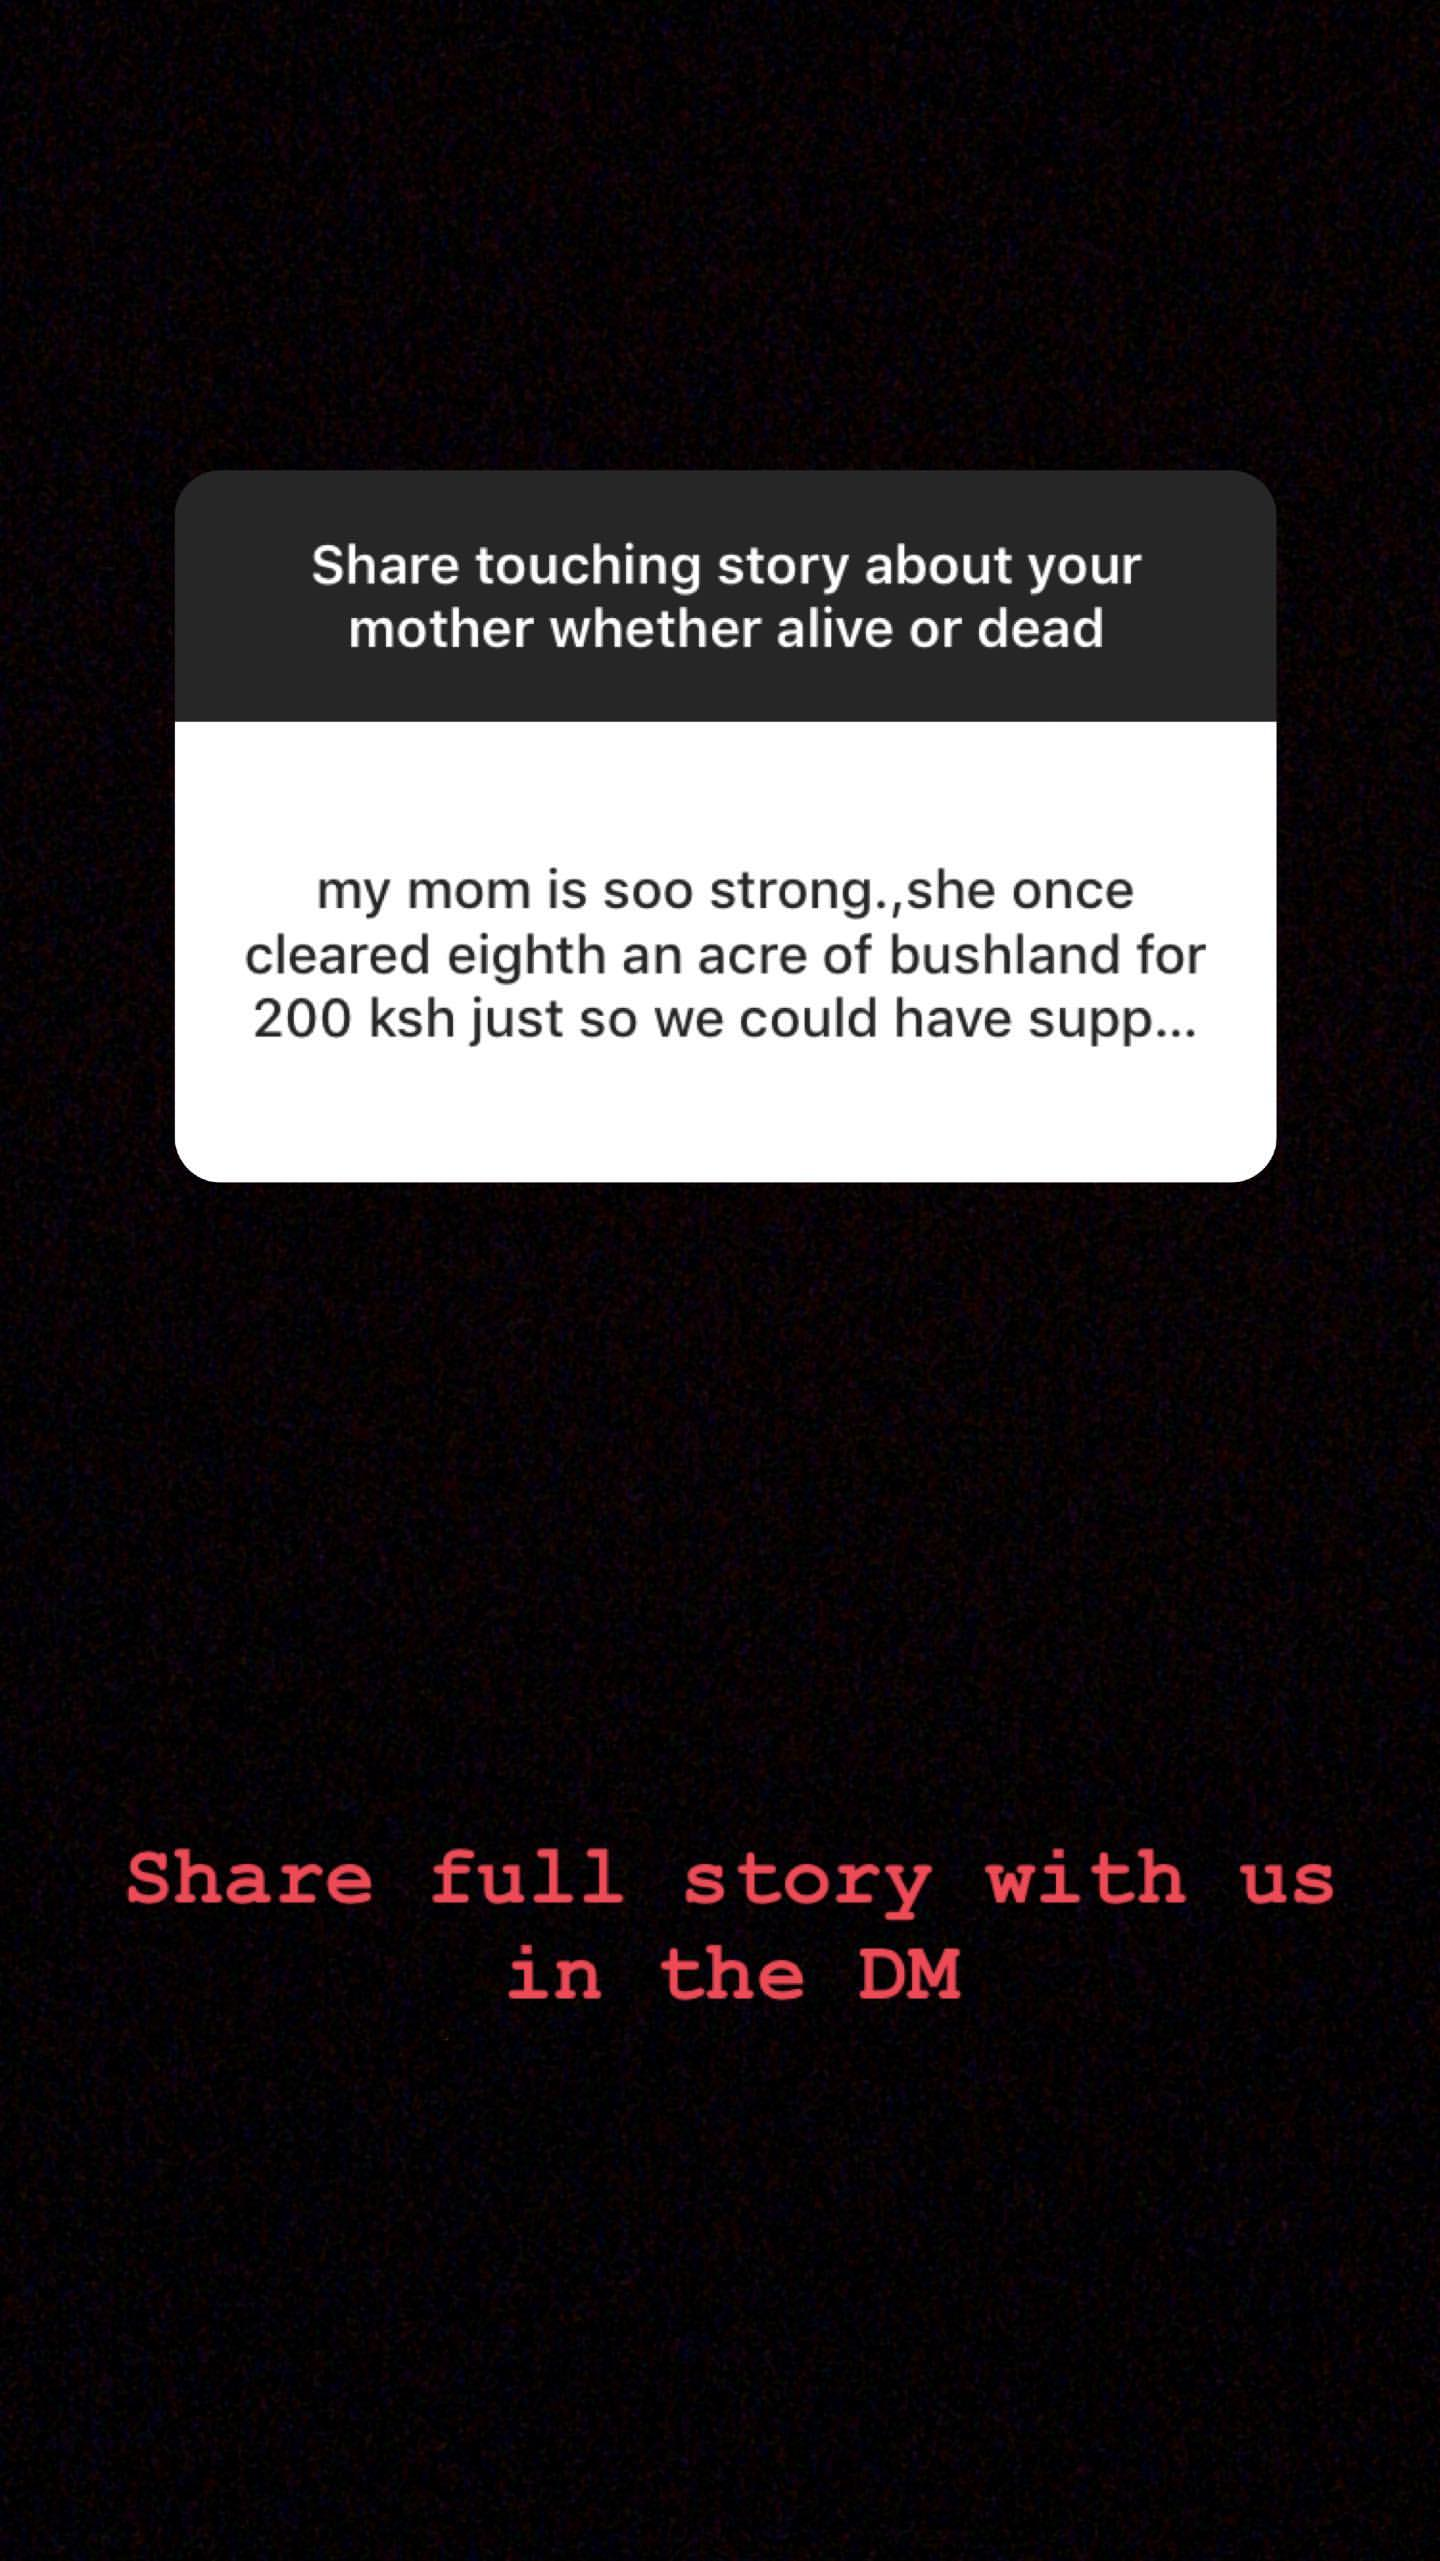 58769513 730882043993320 3988573314612246223 n - Tear-jerking! Mpasho fans break down sharing touching stories about their mothers